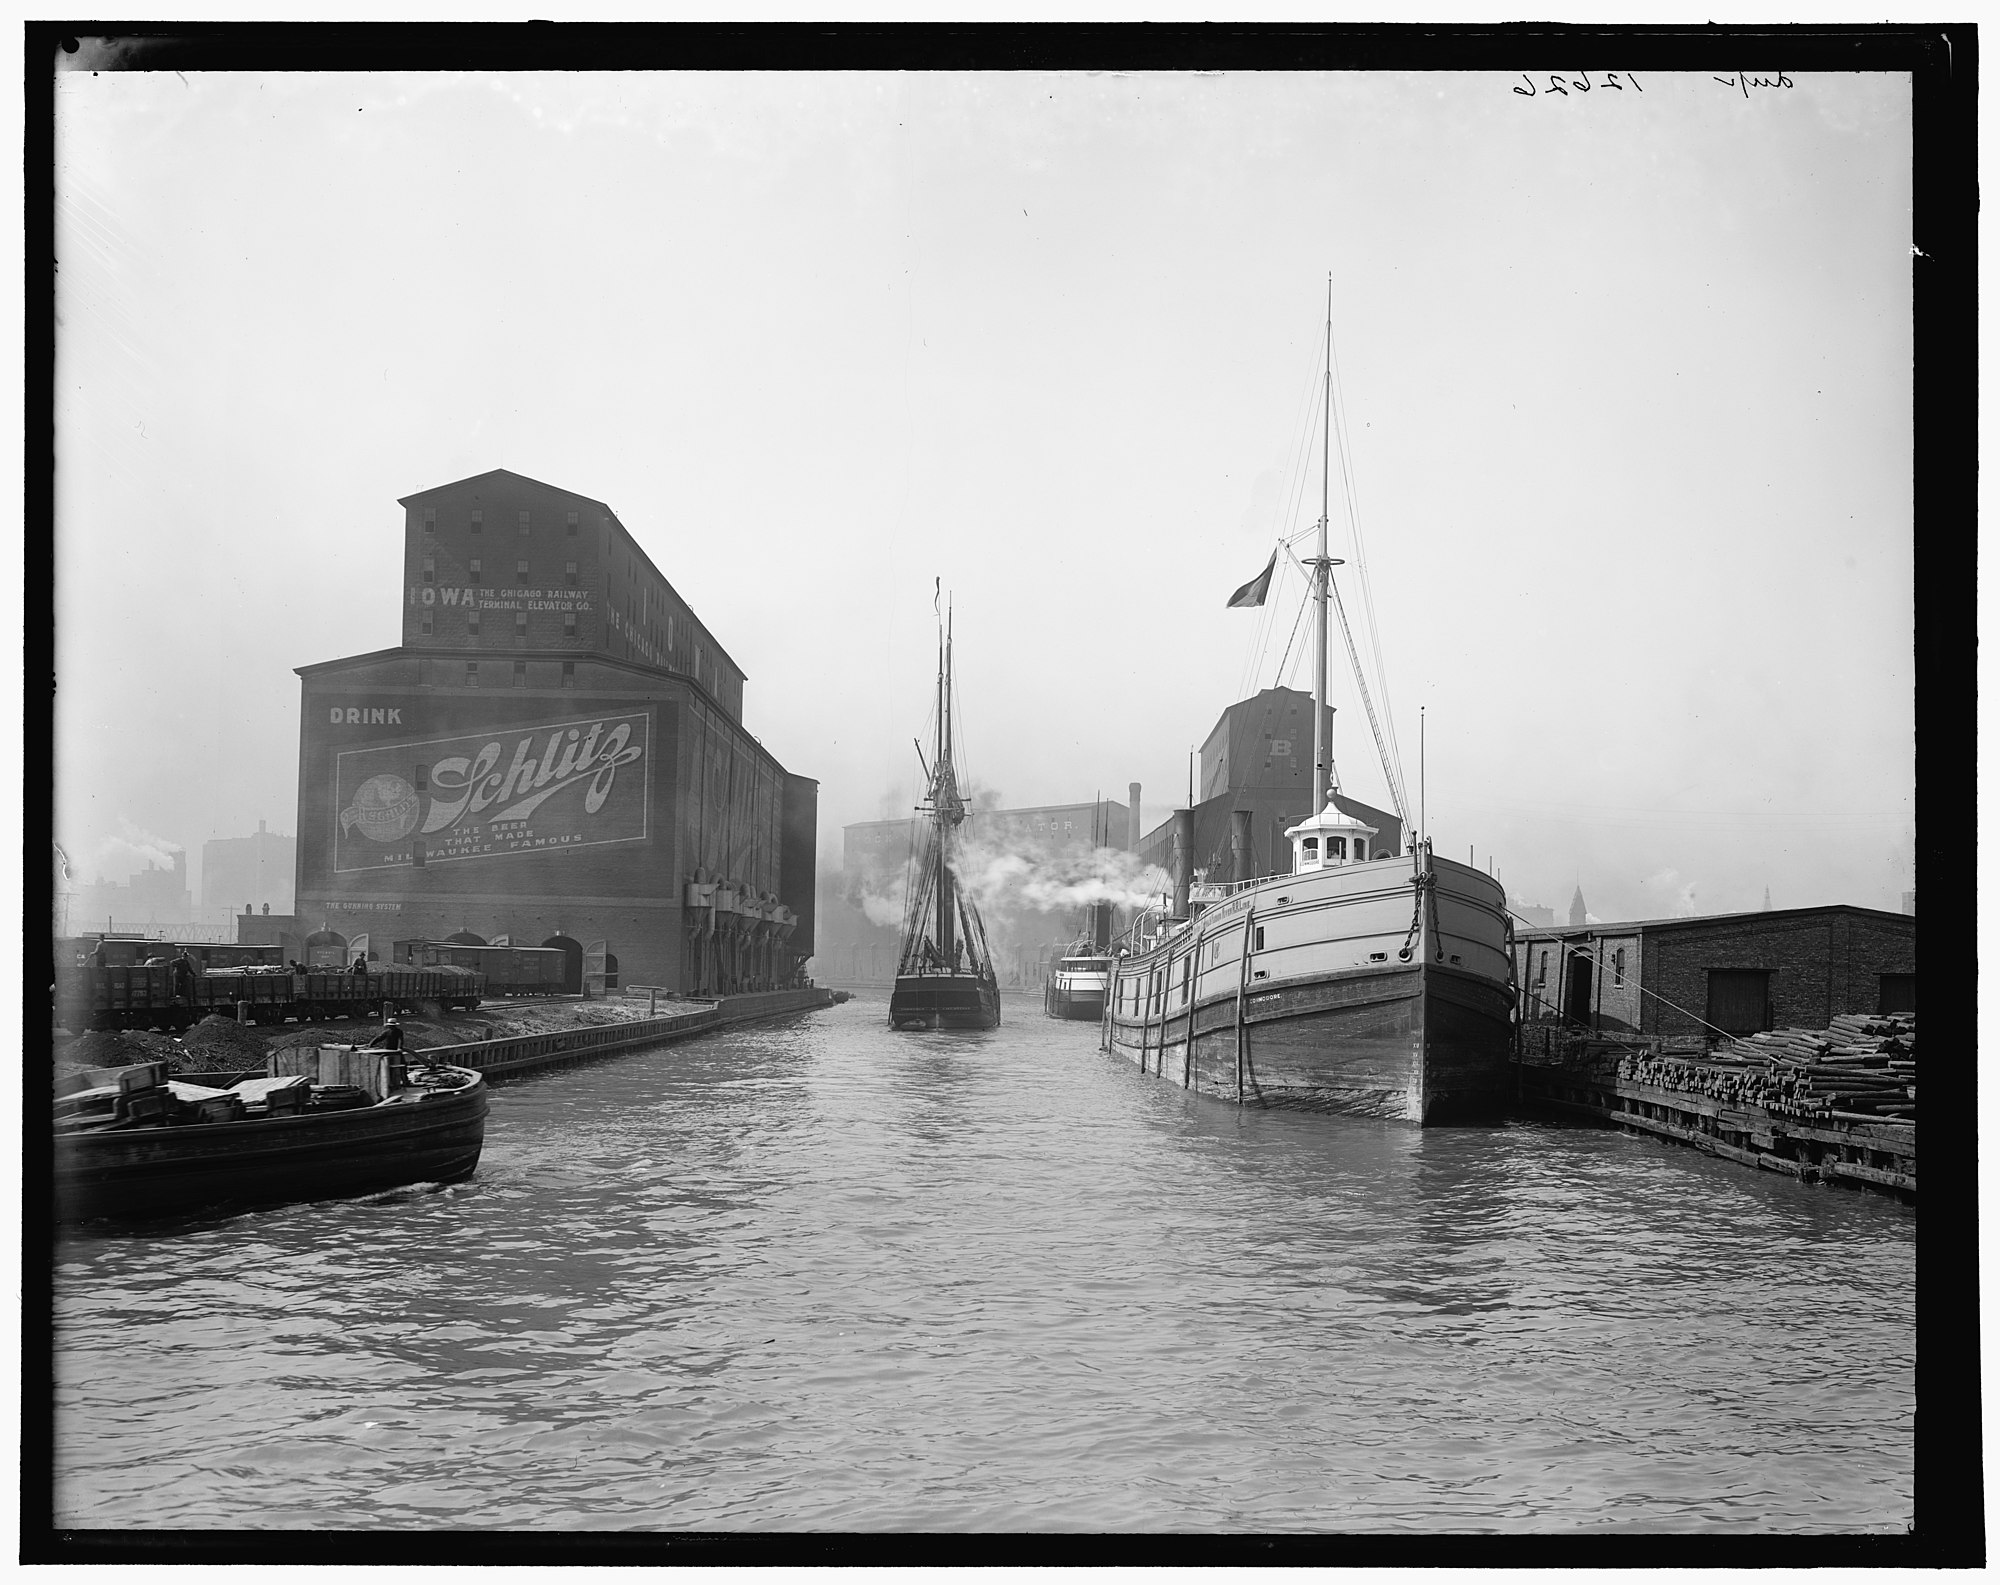 South Branch of the Chicago River at 14th Street, 1900